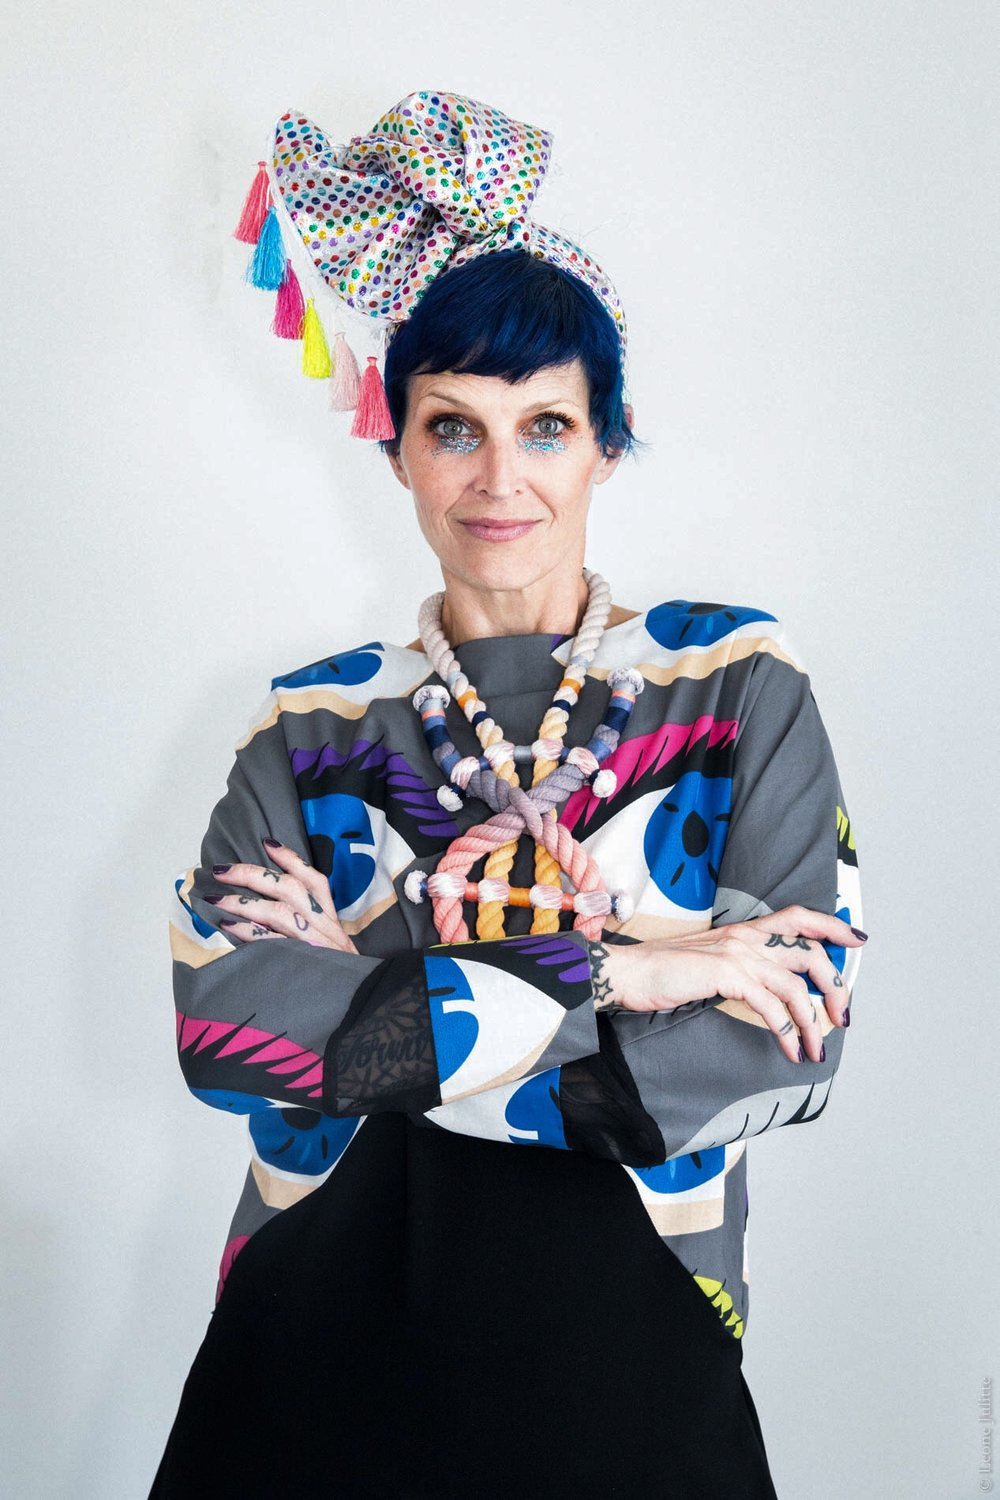 meet the founder - Brandy Michele Adams, also known as Mama Star, established WAAS gallery in 2011. After beginning her career as a celebrity hair and makeup artist in LA, she started curating galleries. Now, she manages socially-active artists across the country. WAAS shifts paradigms. The space produces work that re-imagines and prioritizes women's empowerment. Adams shifted the gallery's focus to well-being in art after sustaining injuries in 2015. Art and wellness, when practiced together, liberate society. WAAS nourishes Dallas artists because it cultivates a vortex of innovative talent and ideas into projects that are accessible to a wide range of communities.